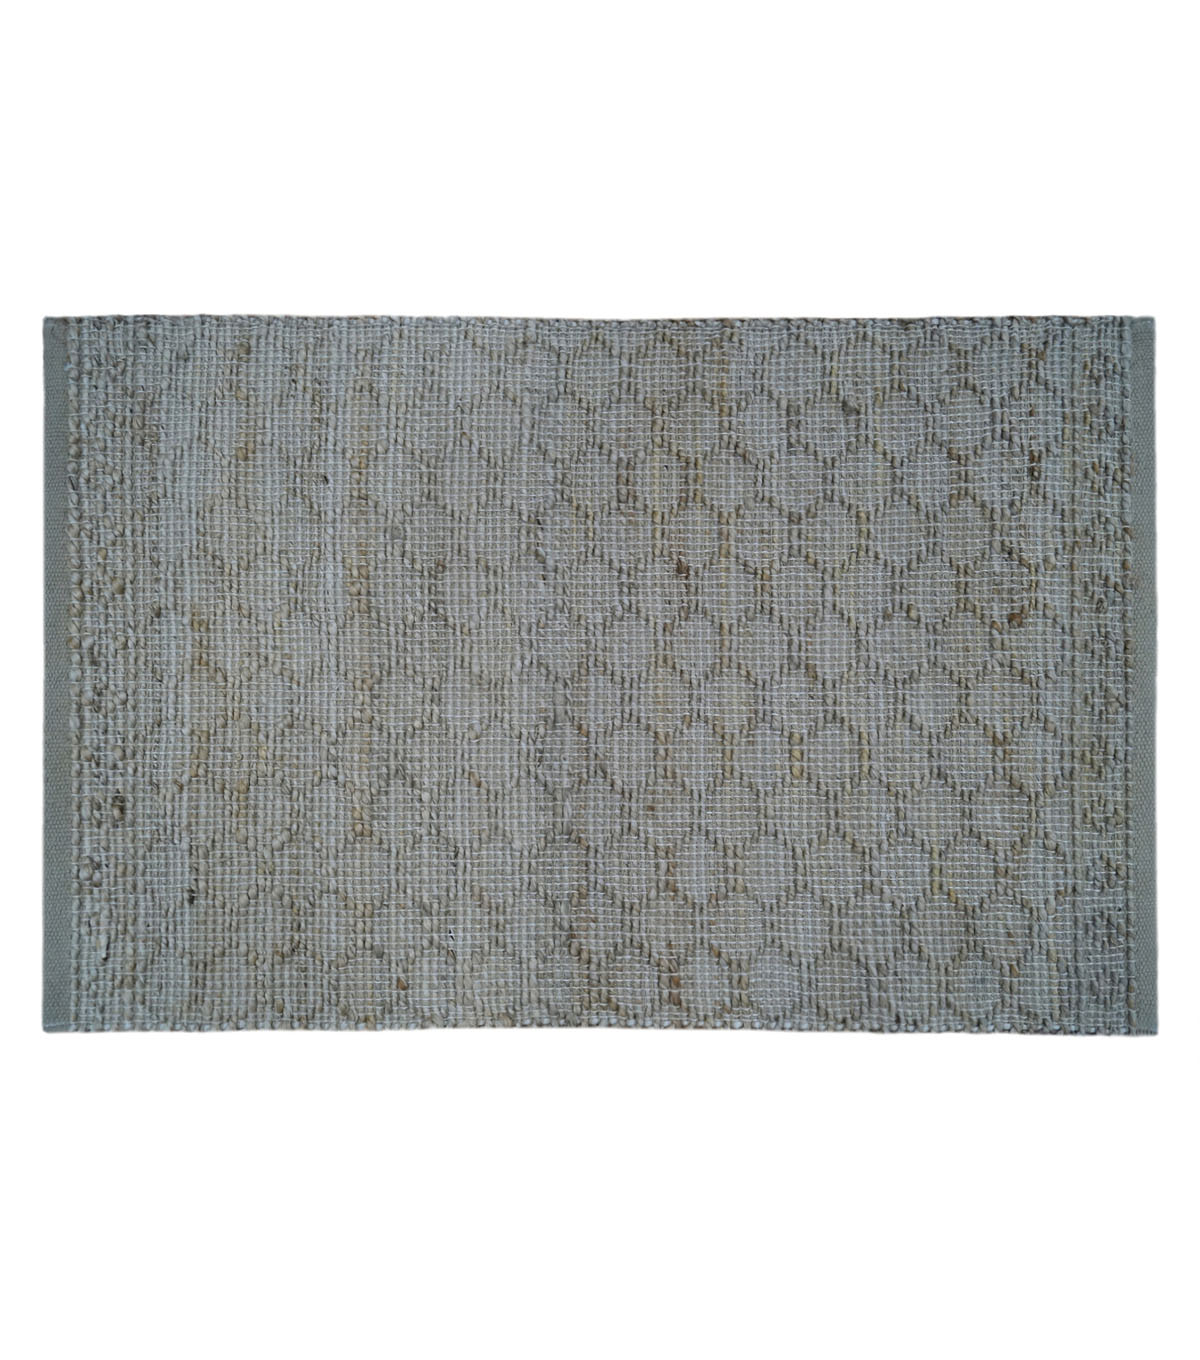 Hudson 43 Pure Jute Rug-Tan Diamond Texture